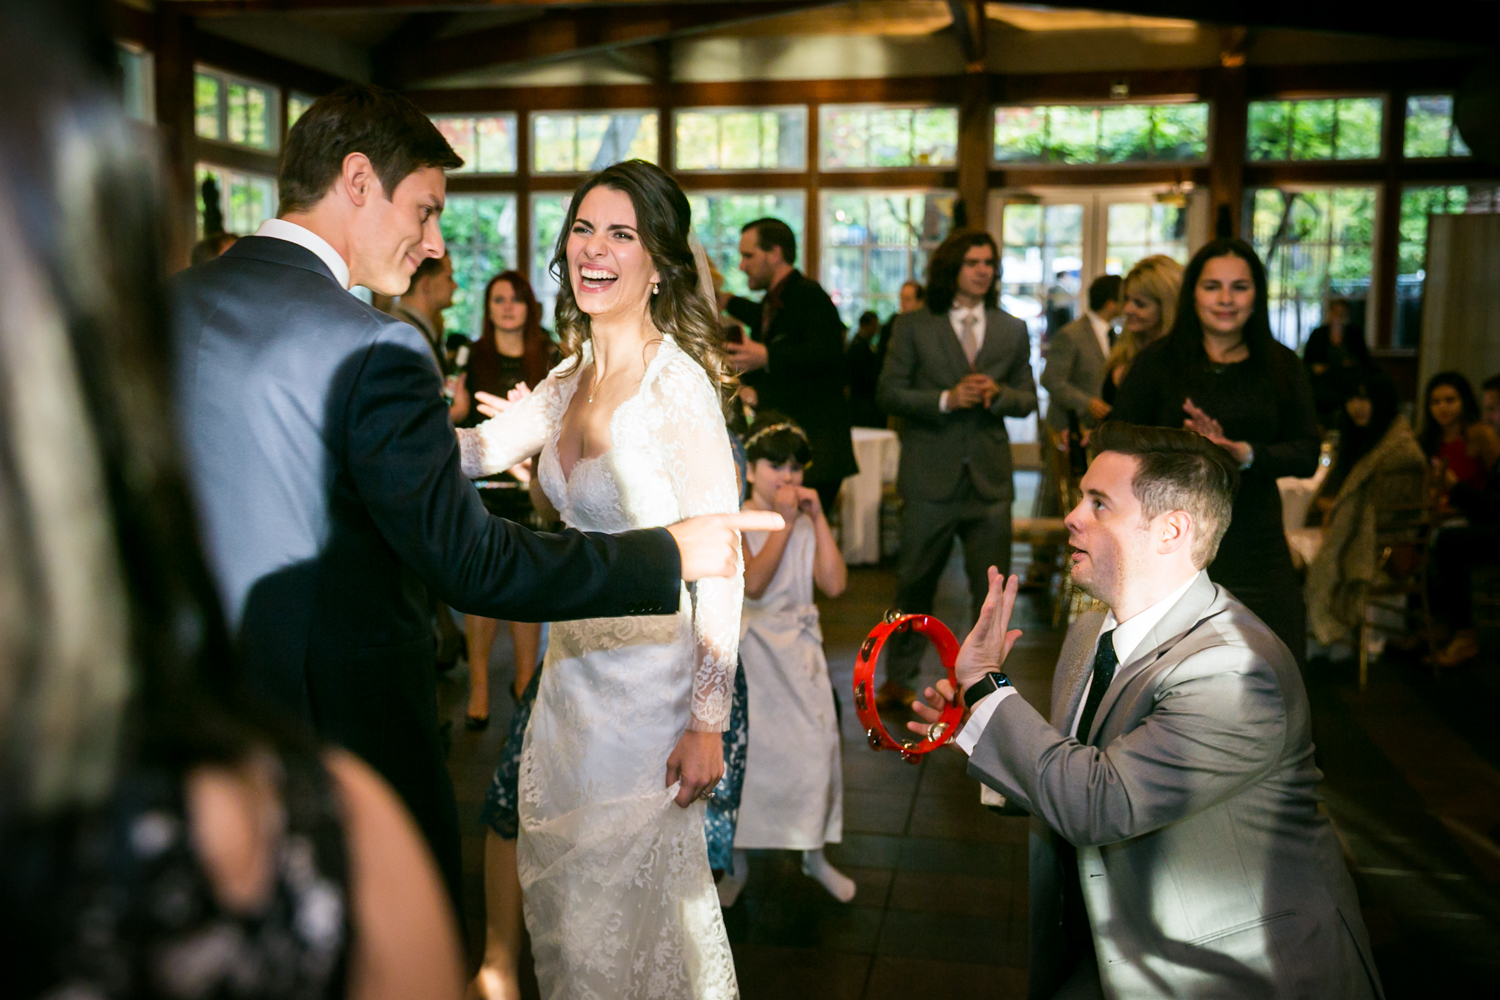 Bride and groom with guest on his knees playing a tambourine